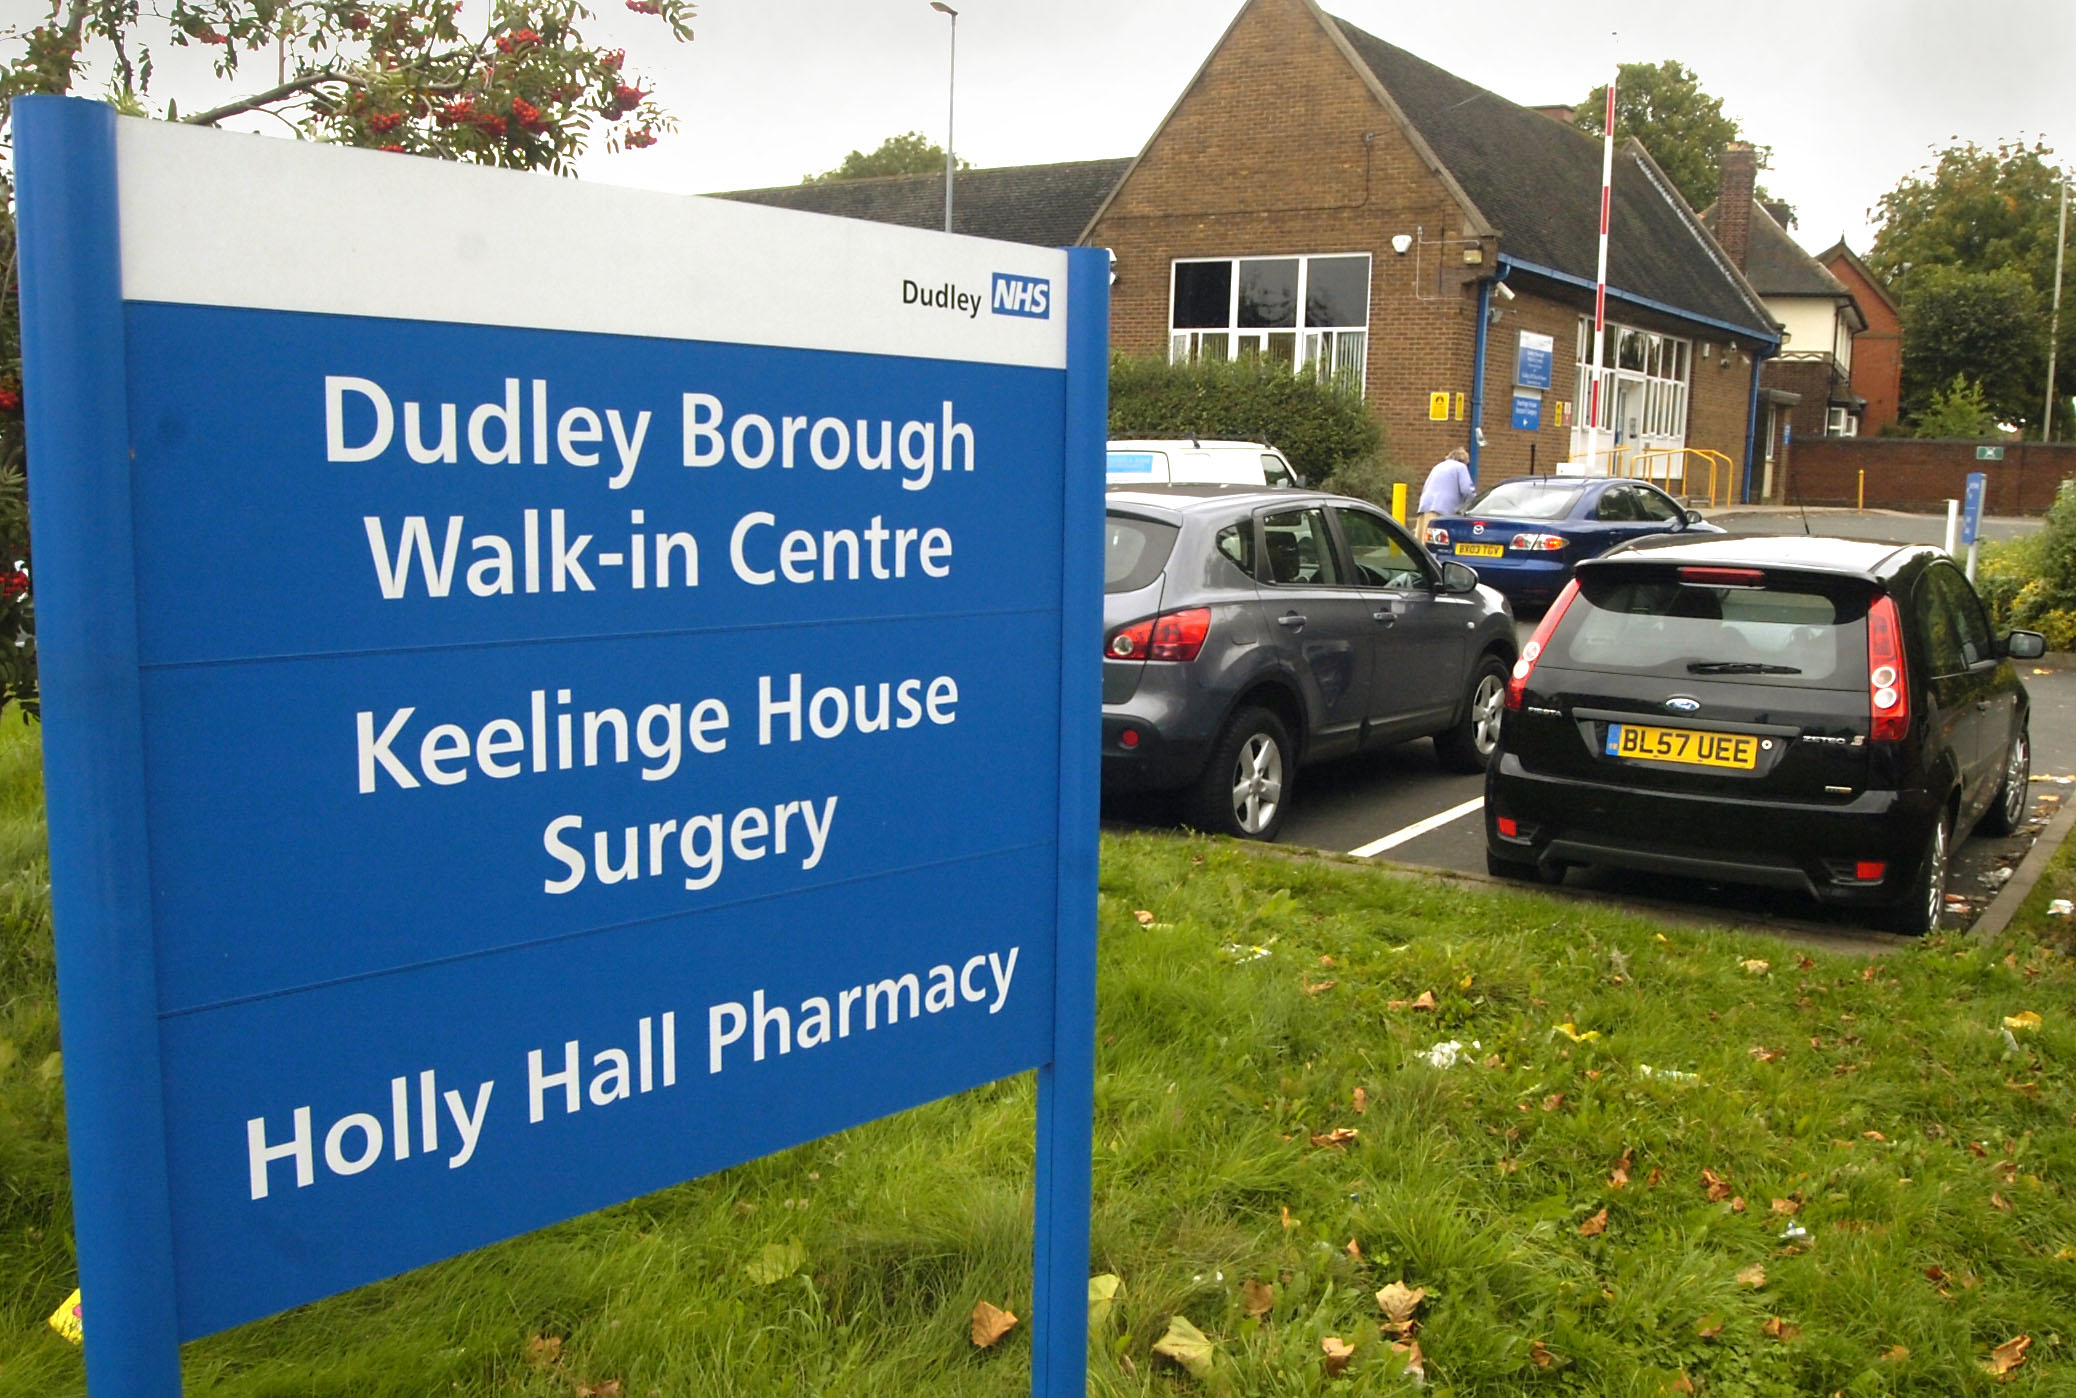 Borough walk-in centre to be replaced with 24/7 urgent care centre